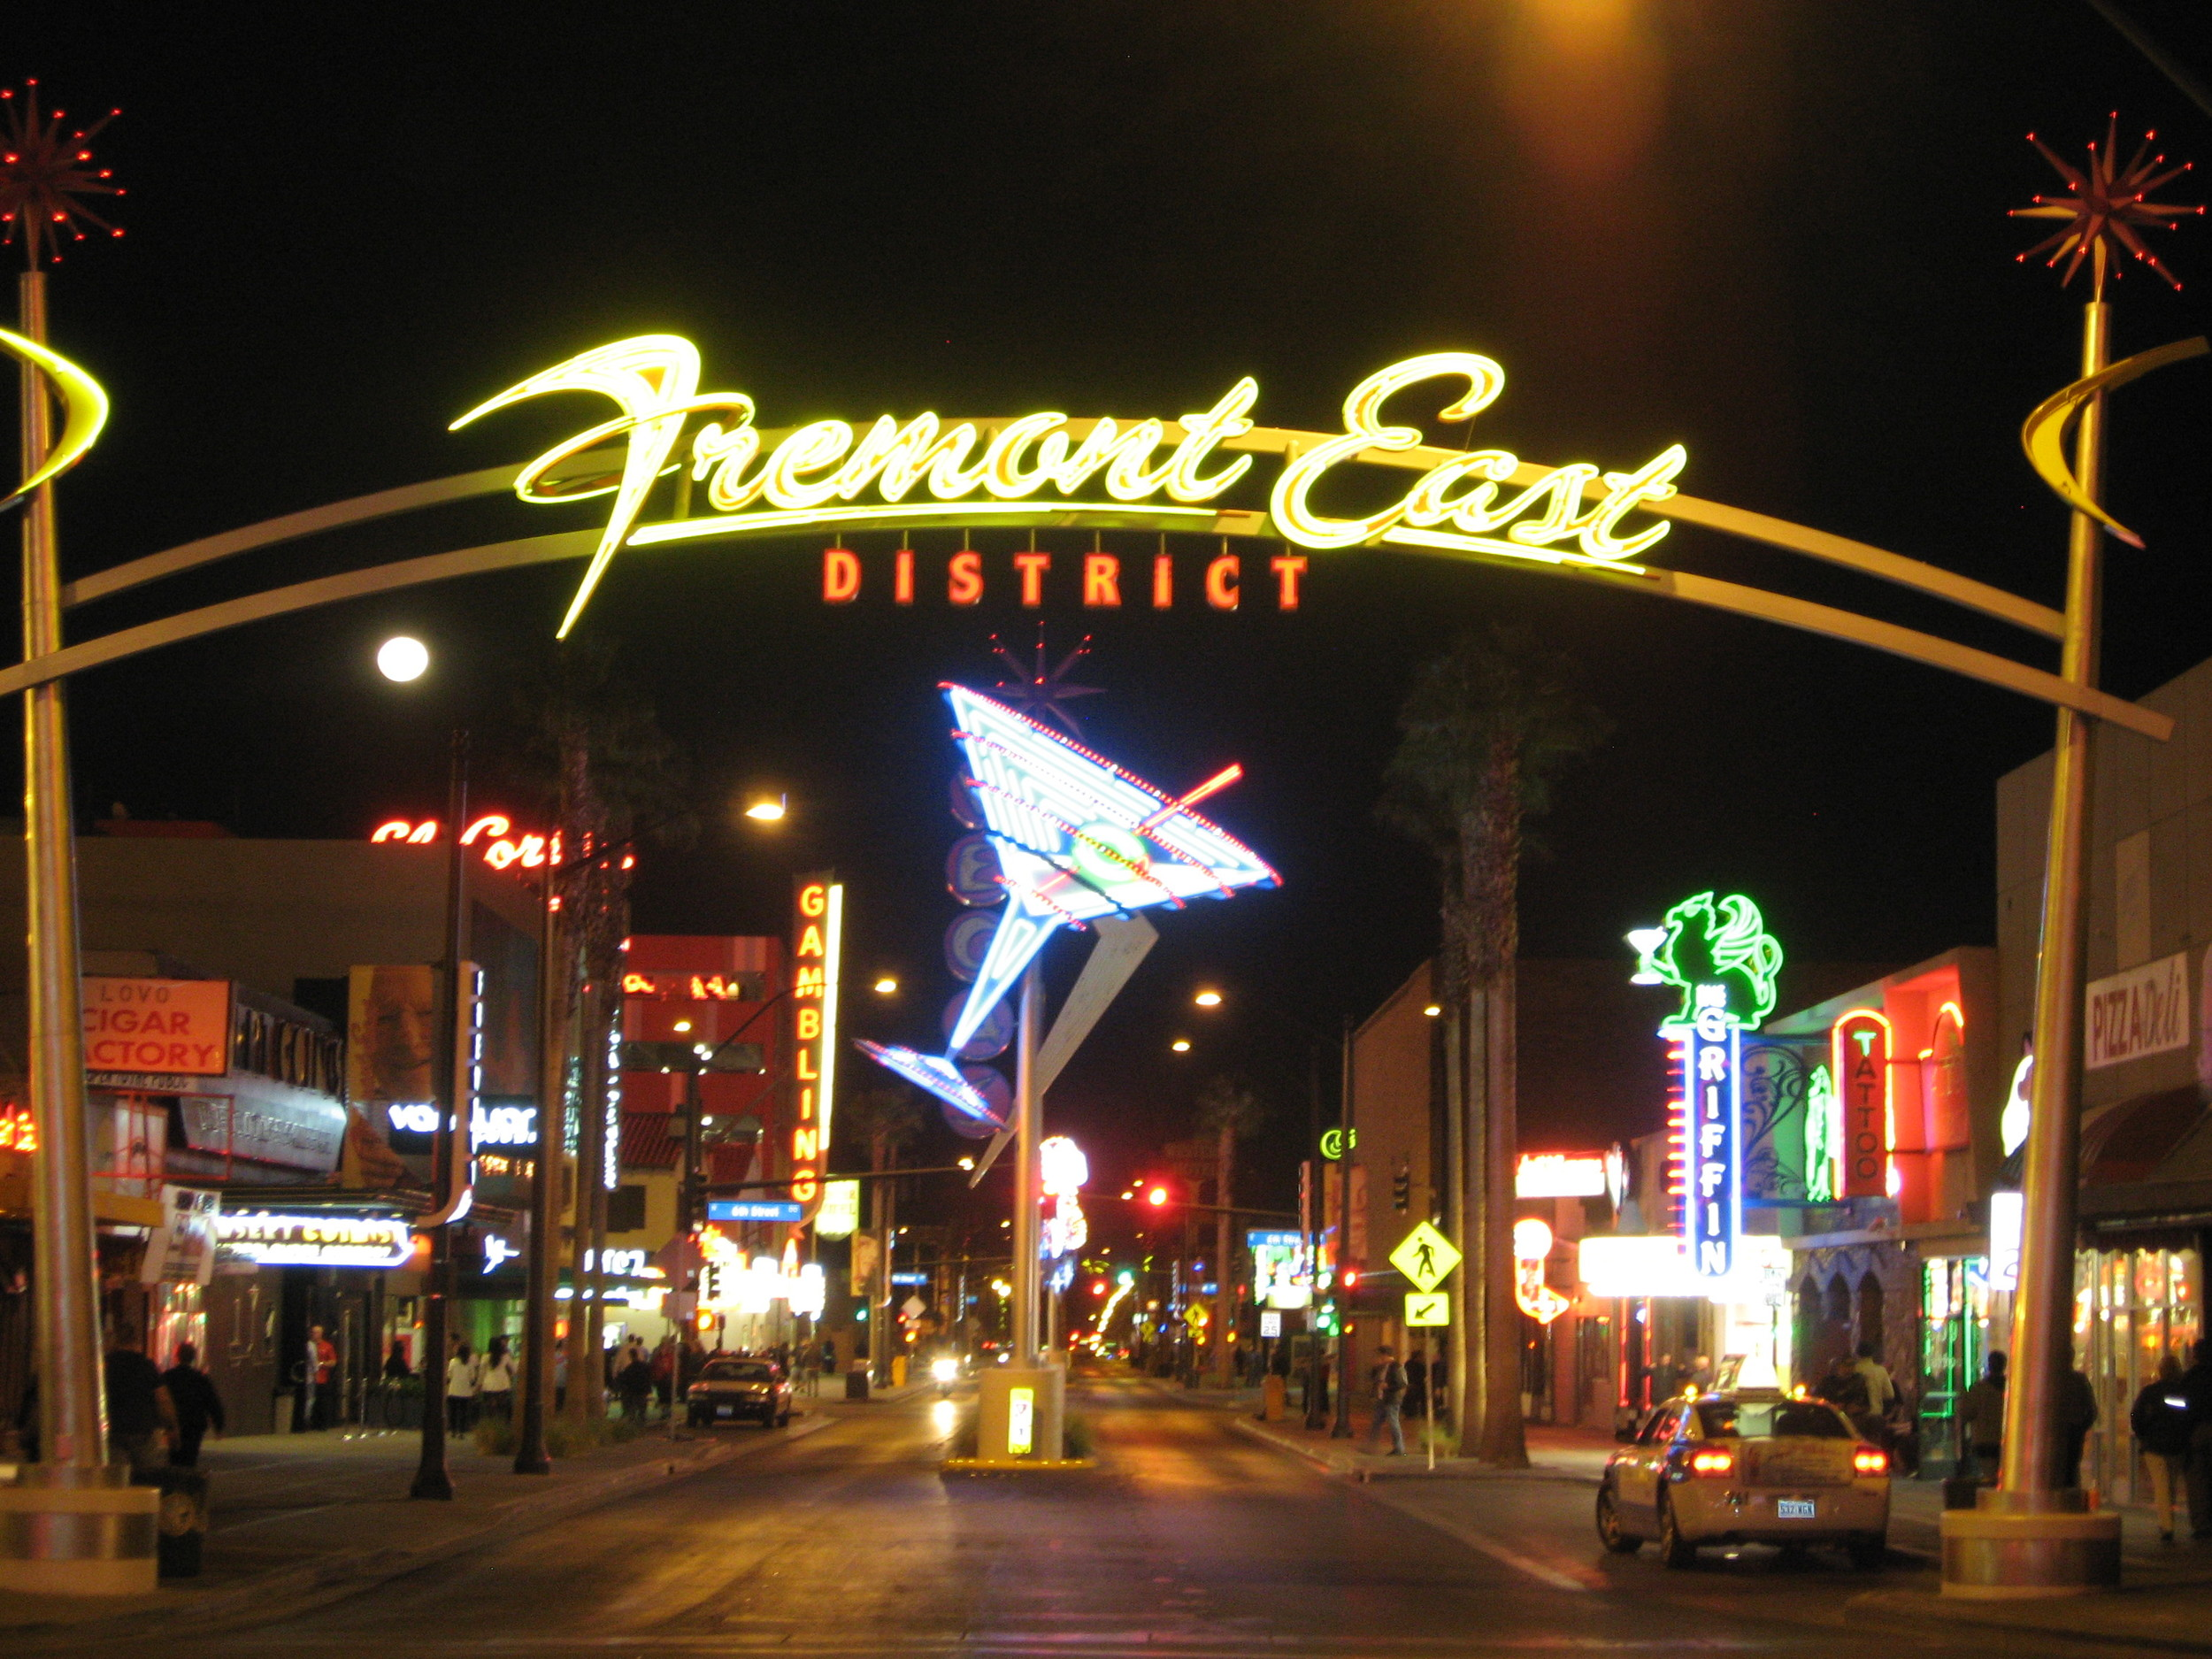 Downtowns across North America use to fun places with lots of colour and street animation animation provided by the flashing bright neon lights. Today there are few of the big, bold beautiful neon signs left.